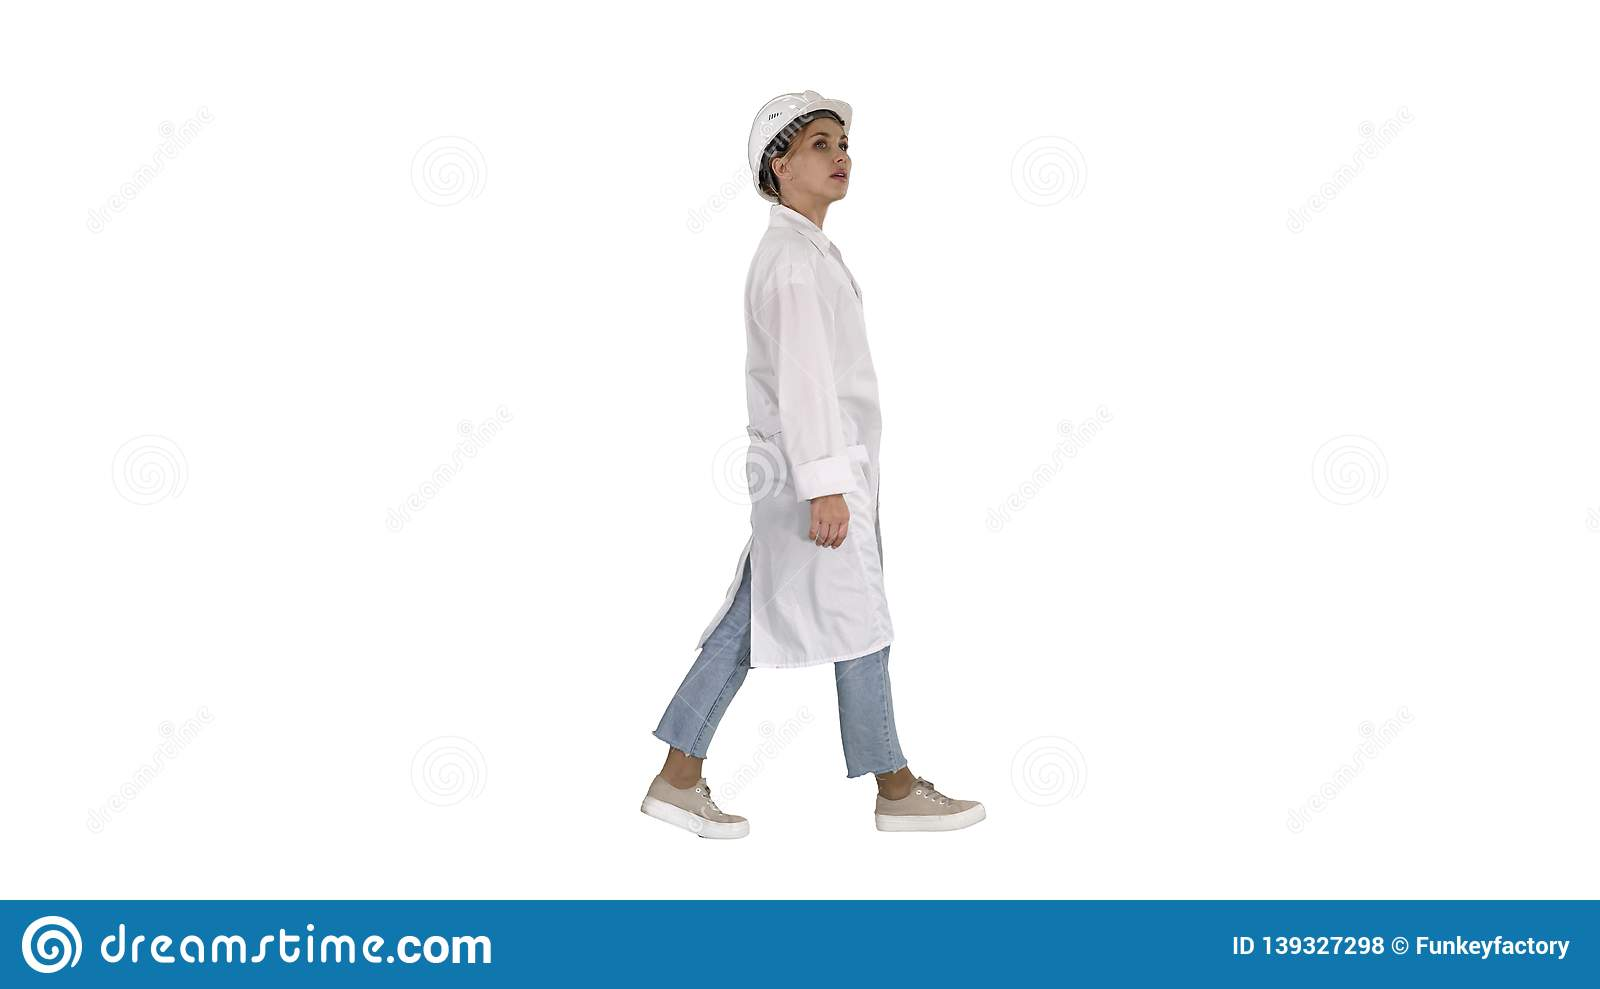 Engineer woman walking and checking the object on white background.